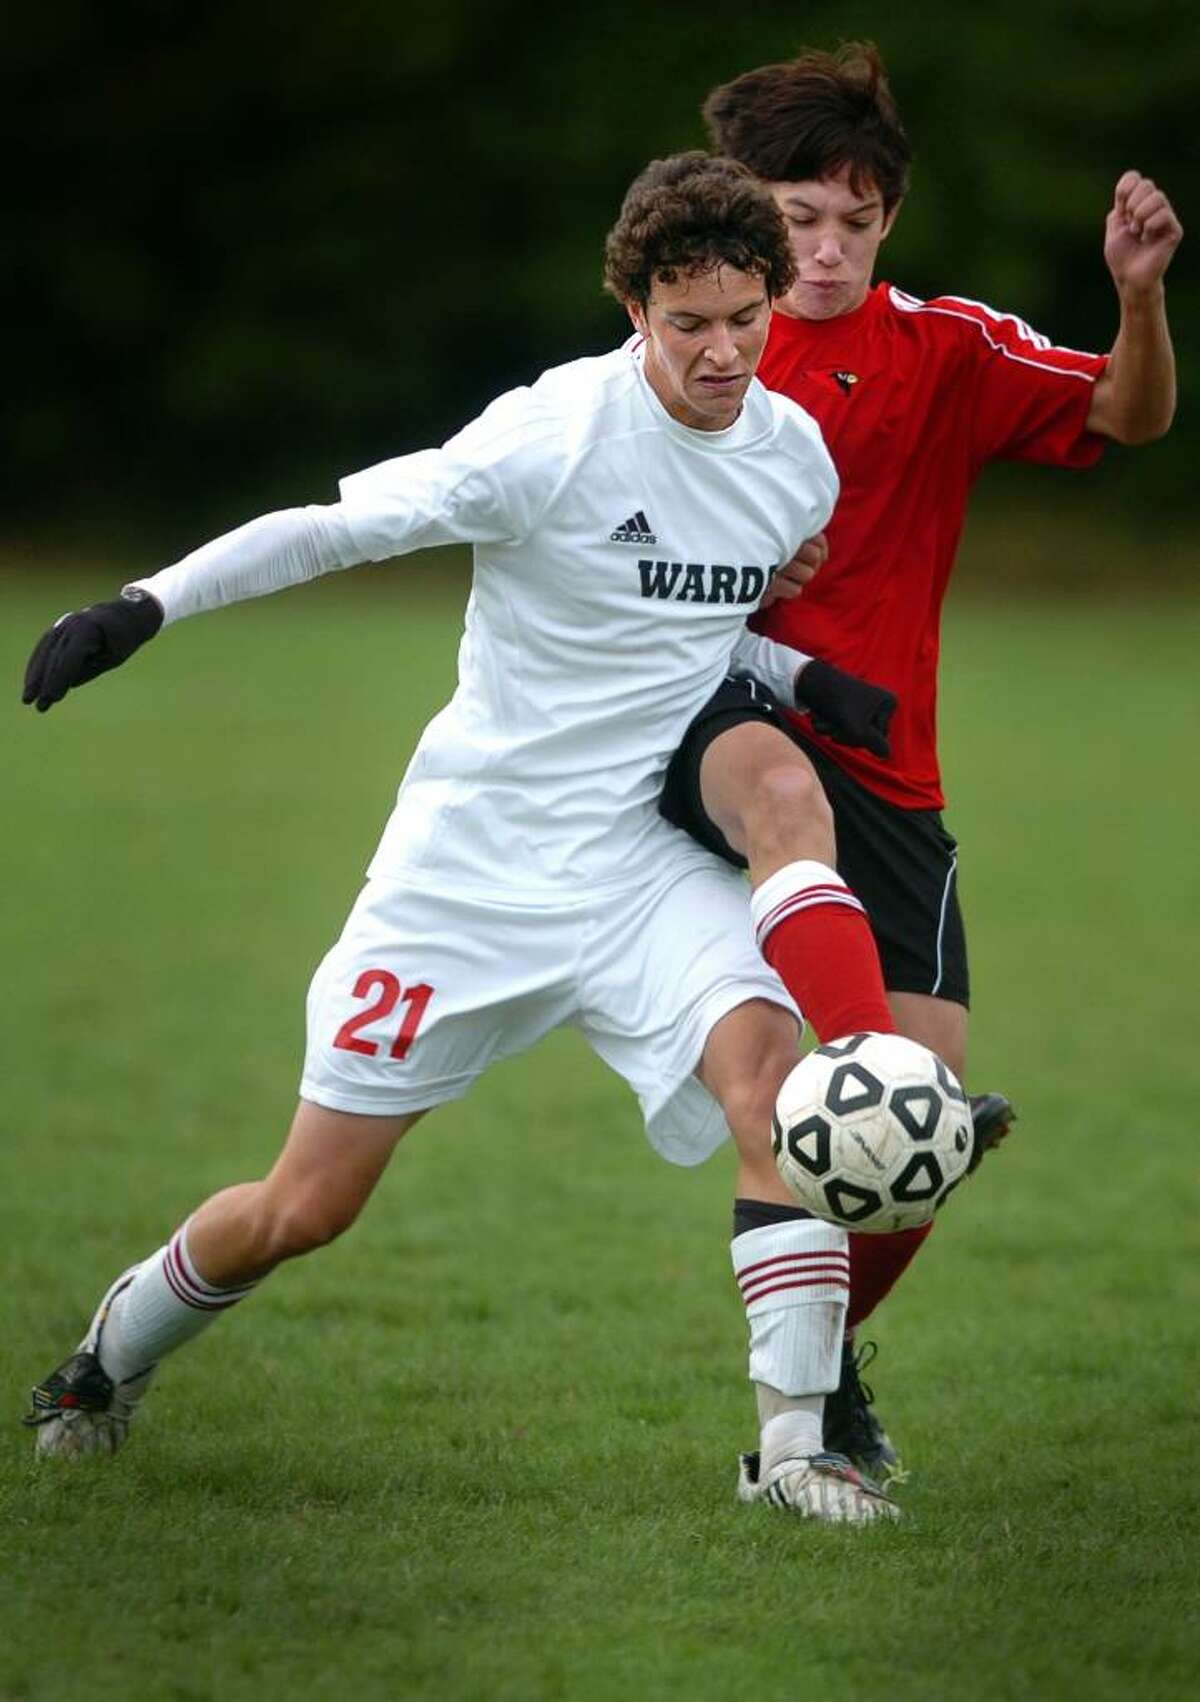 Fairfield Warde's Kevin Petroccio struggles with Greenwich's Juliaan Zenner during the first half of Wednesday's match at Warde.